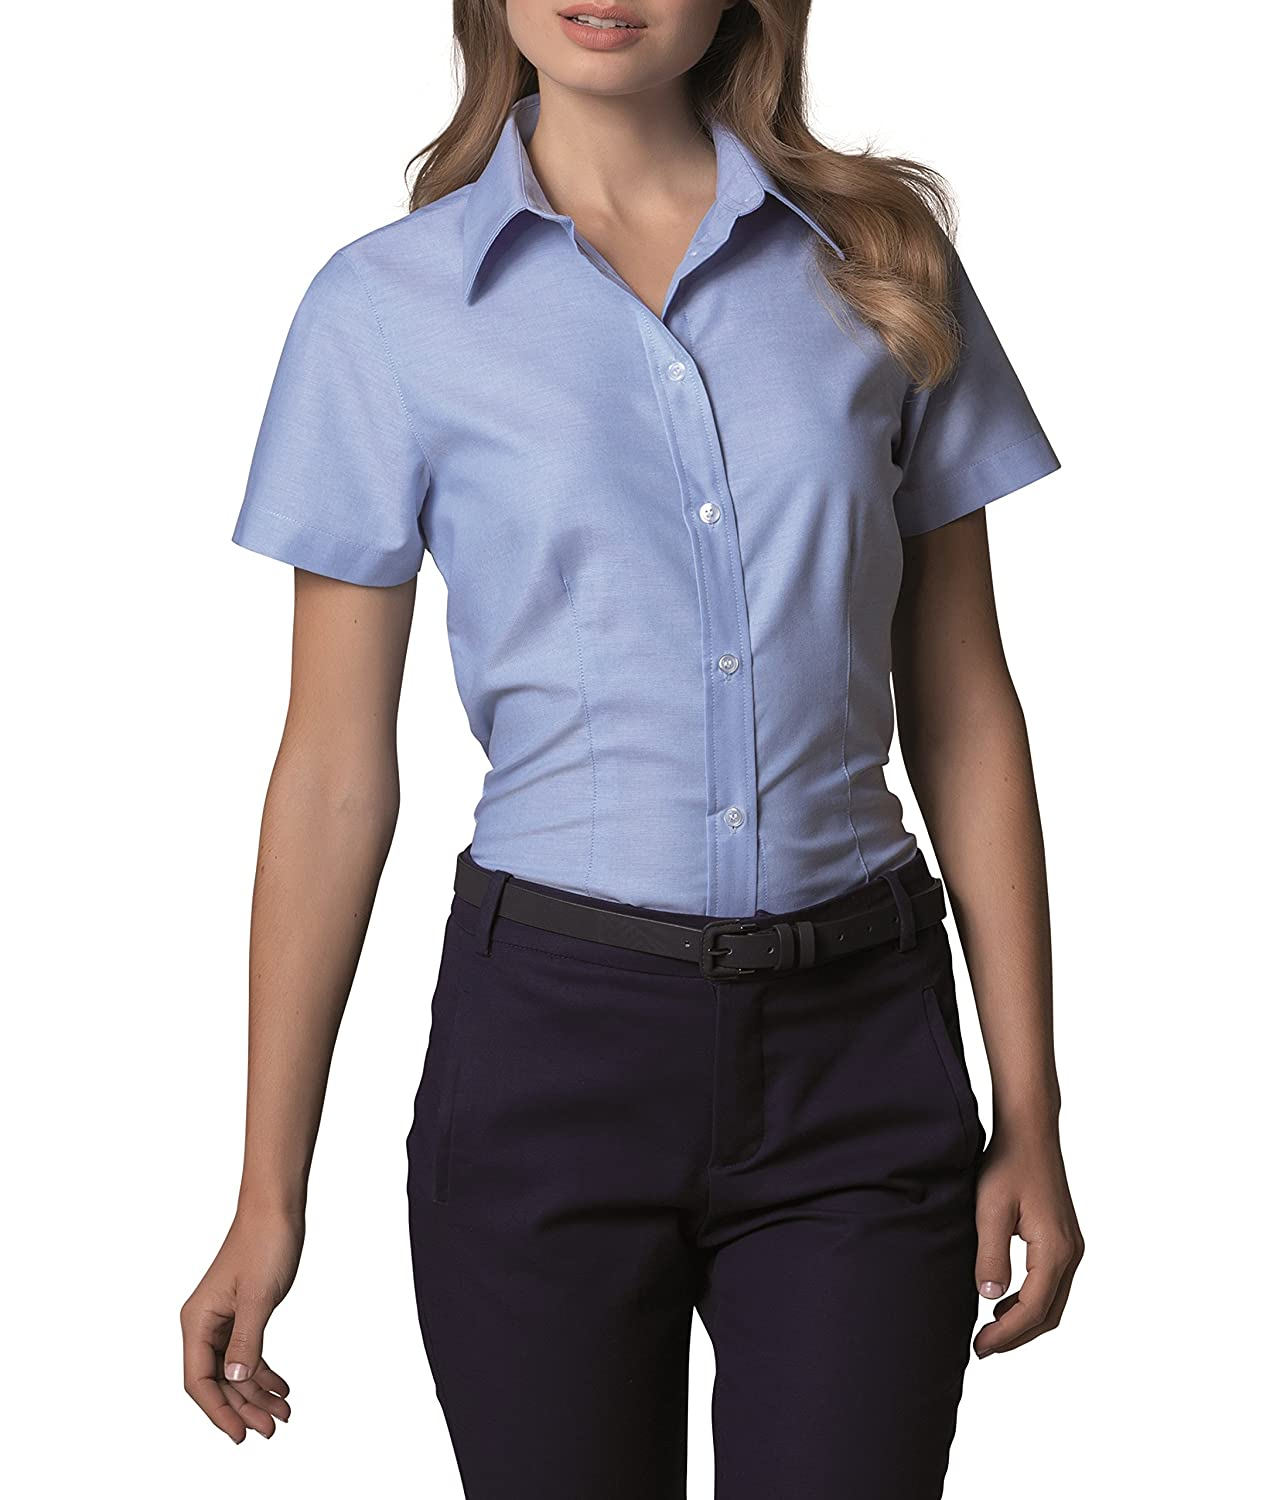 Kustom Kit Ladies Workwear Oxford Short Sleeve Shirt